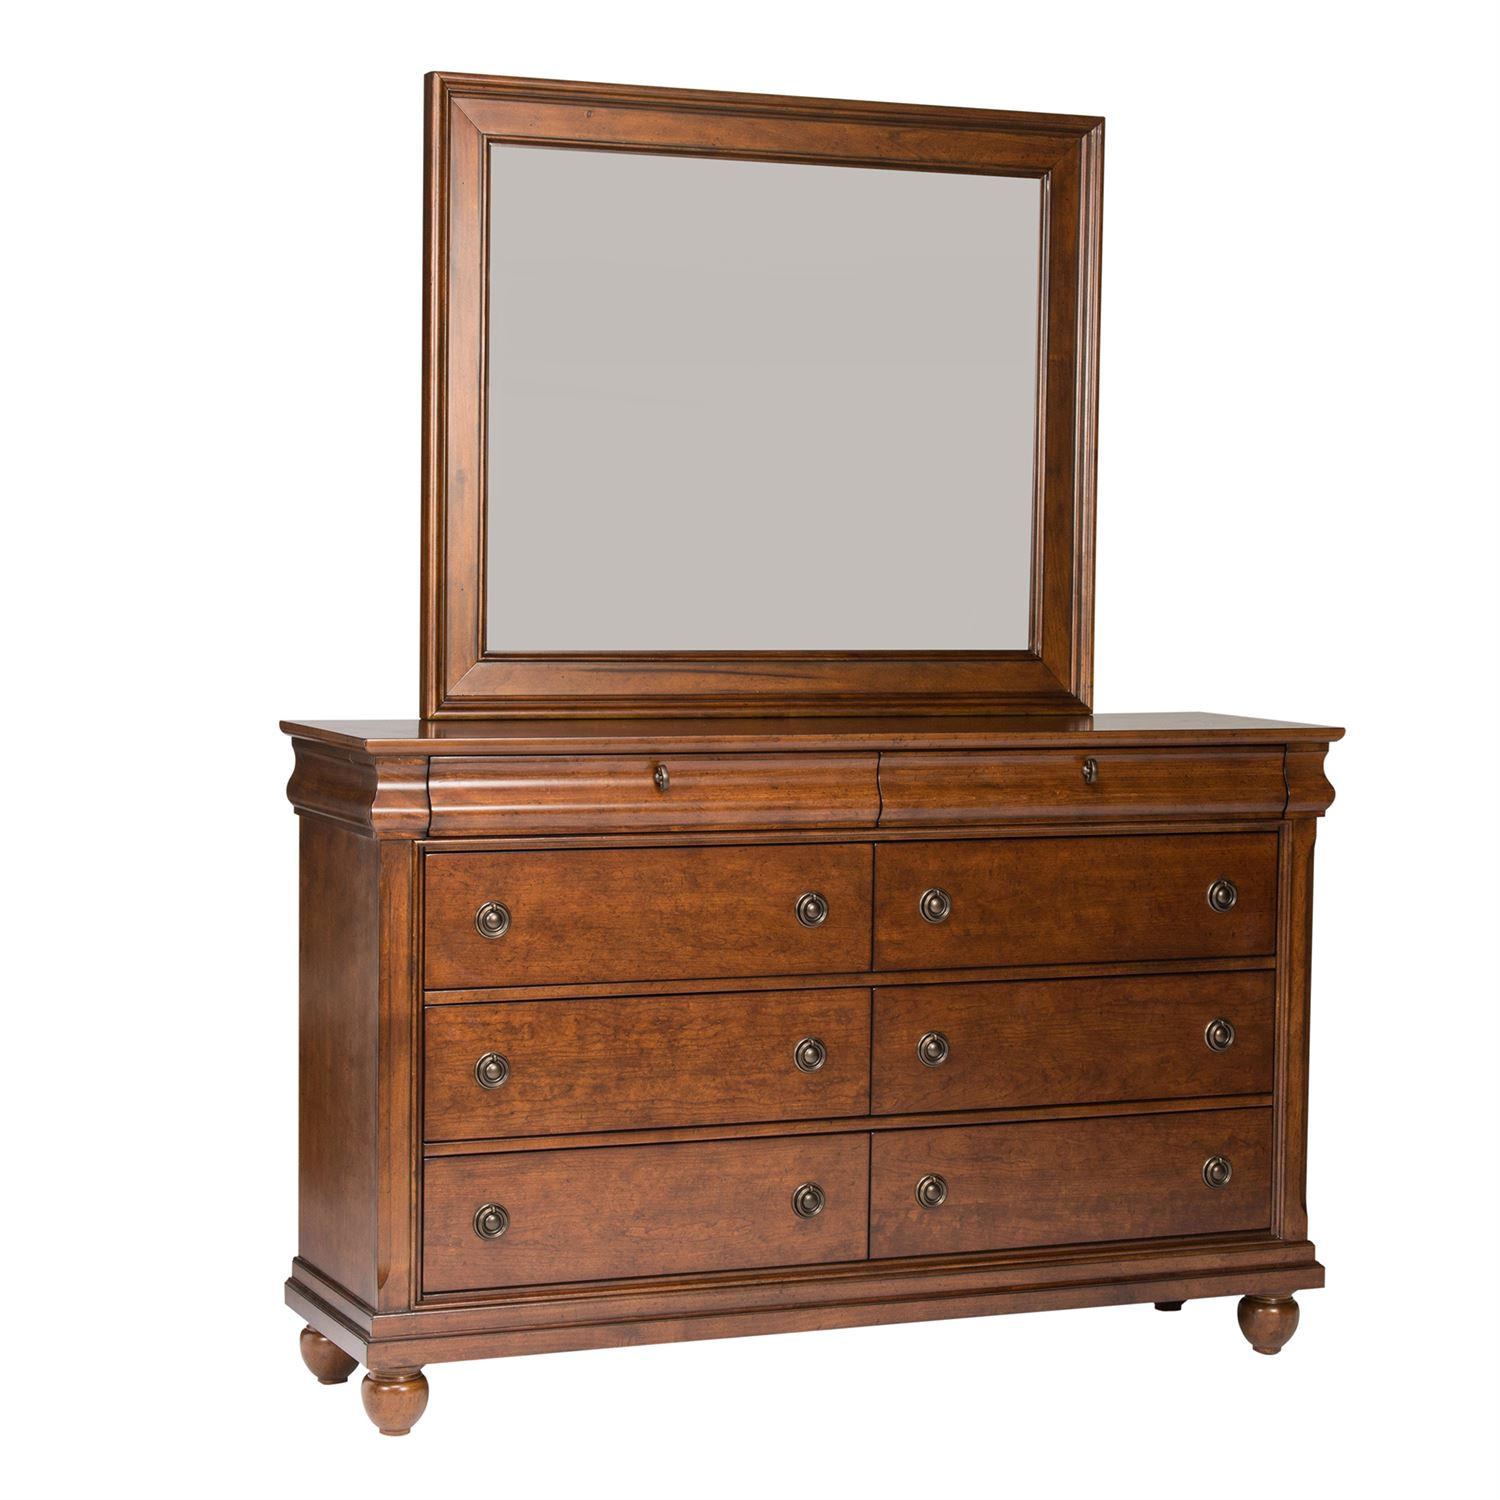 8 Drawer Dresser and Mirror